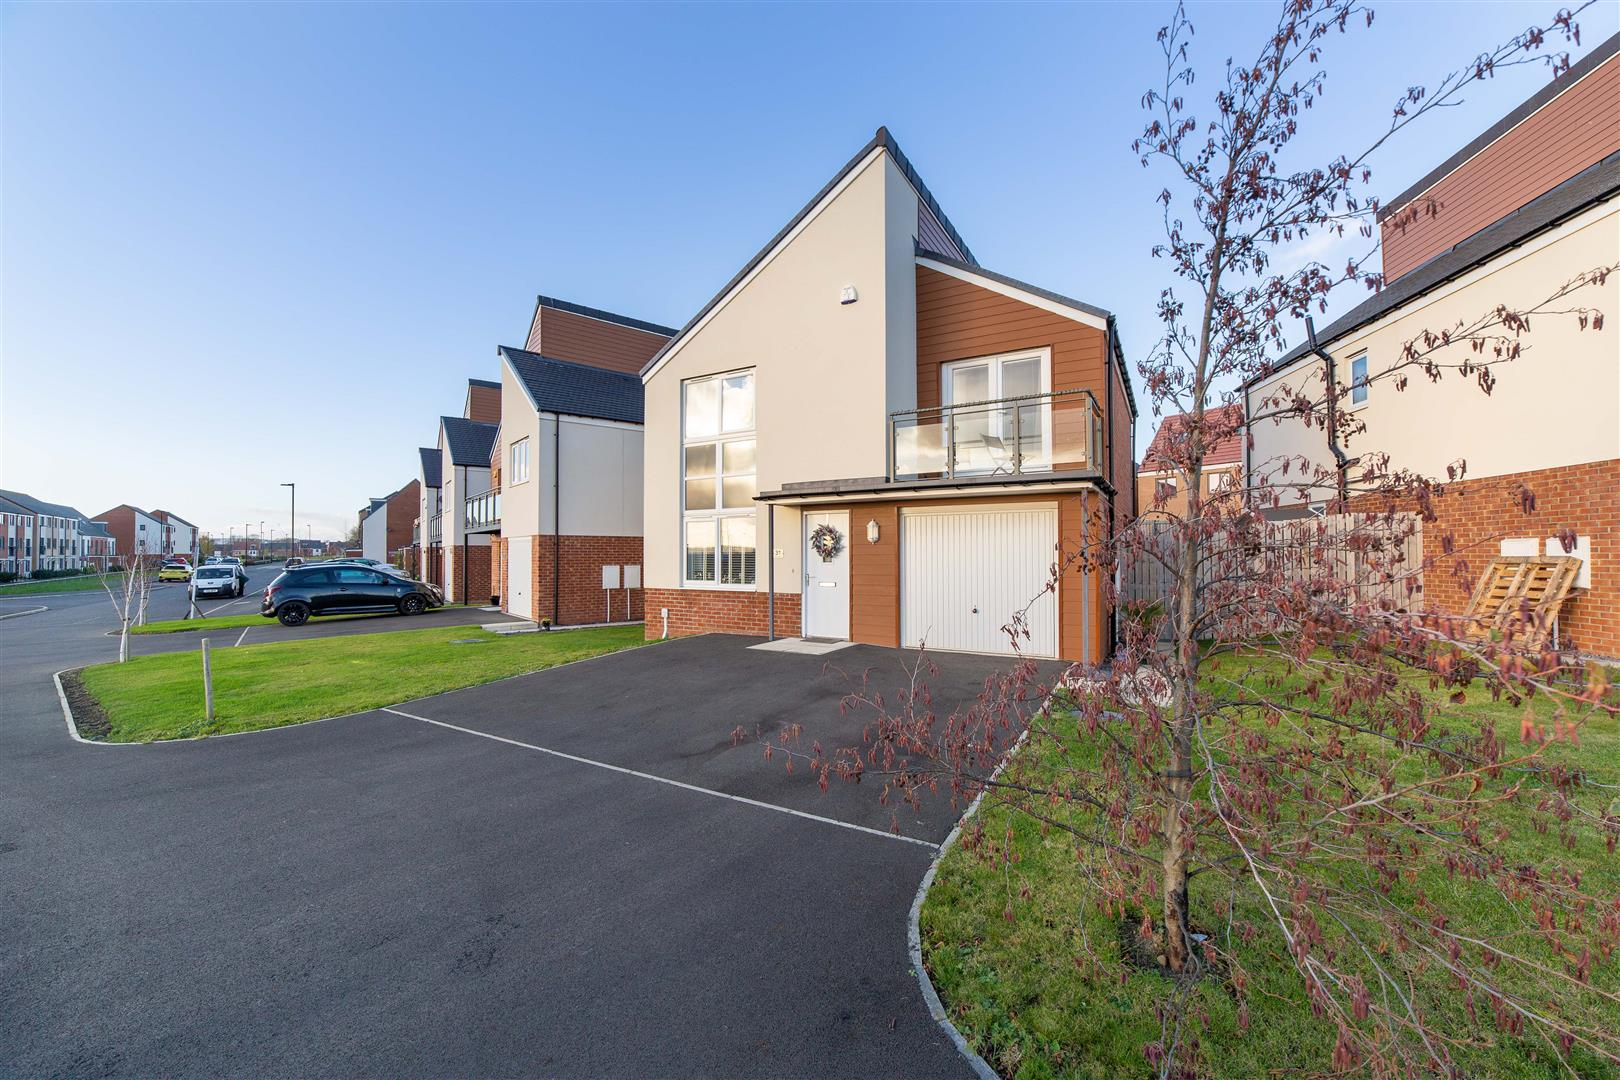 4 bed detached house for sale in Newcastle Upon Tyne, NE13 9DR - Property Image 1